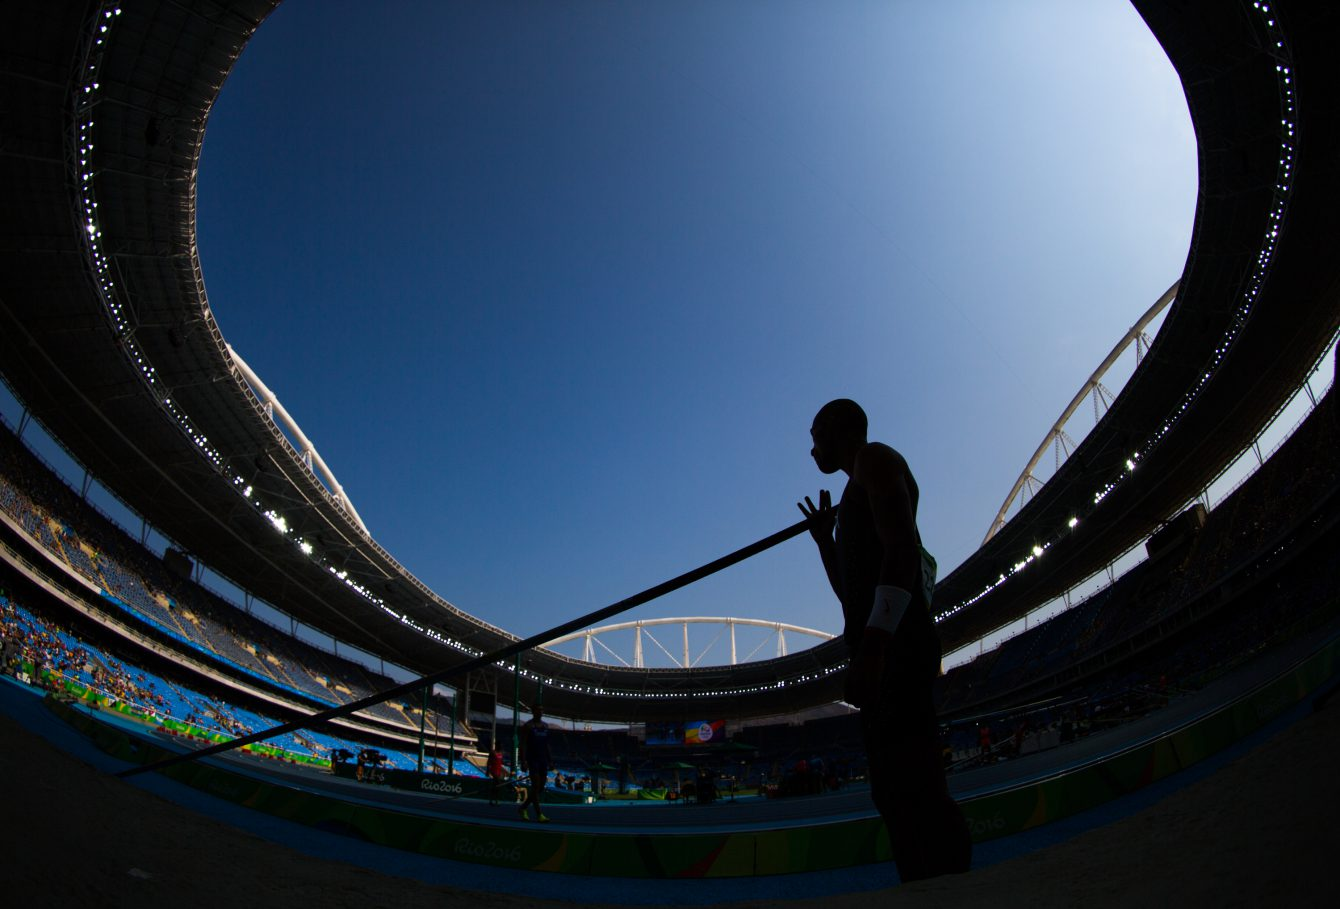 Canada's Damian Warner looks on before competing in the pole vault in the men's decathlon at the Olympic games in Rio de Janeiro, Brazil, Thursday August 18, 2016.    COC Photo/Mark Blinch